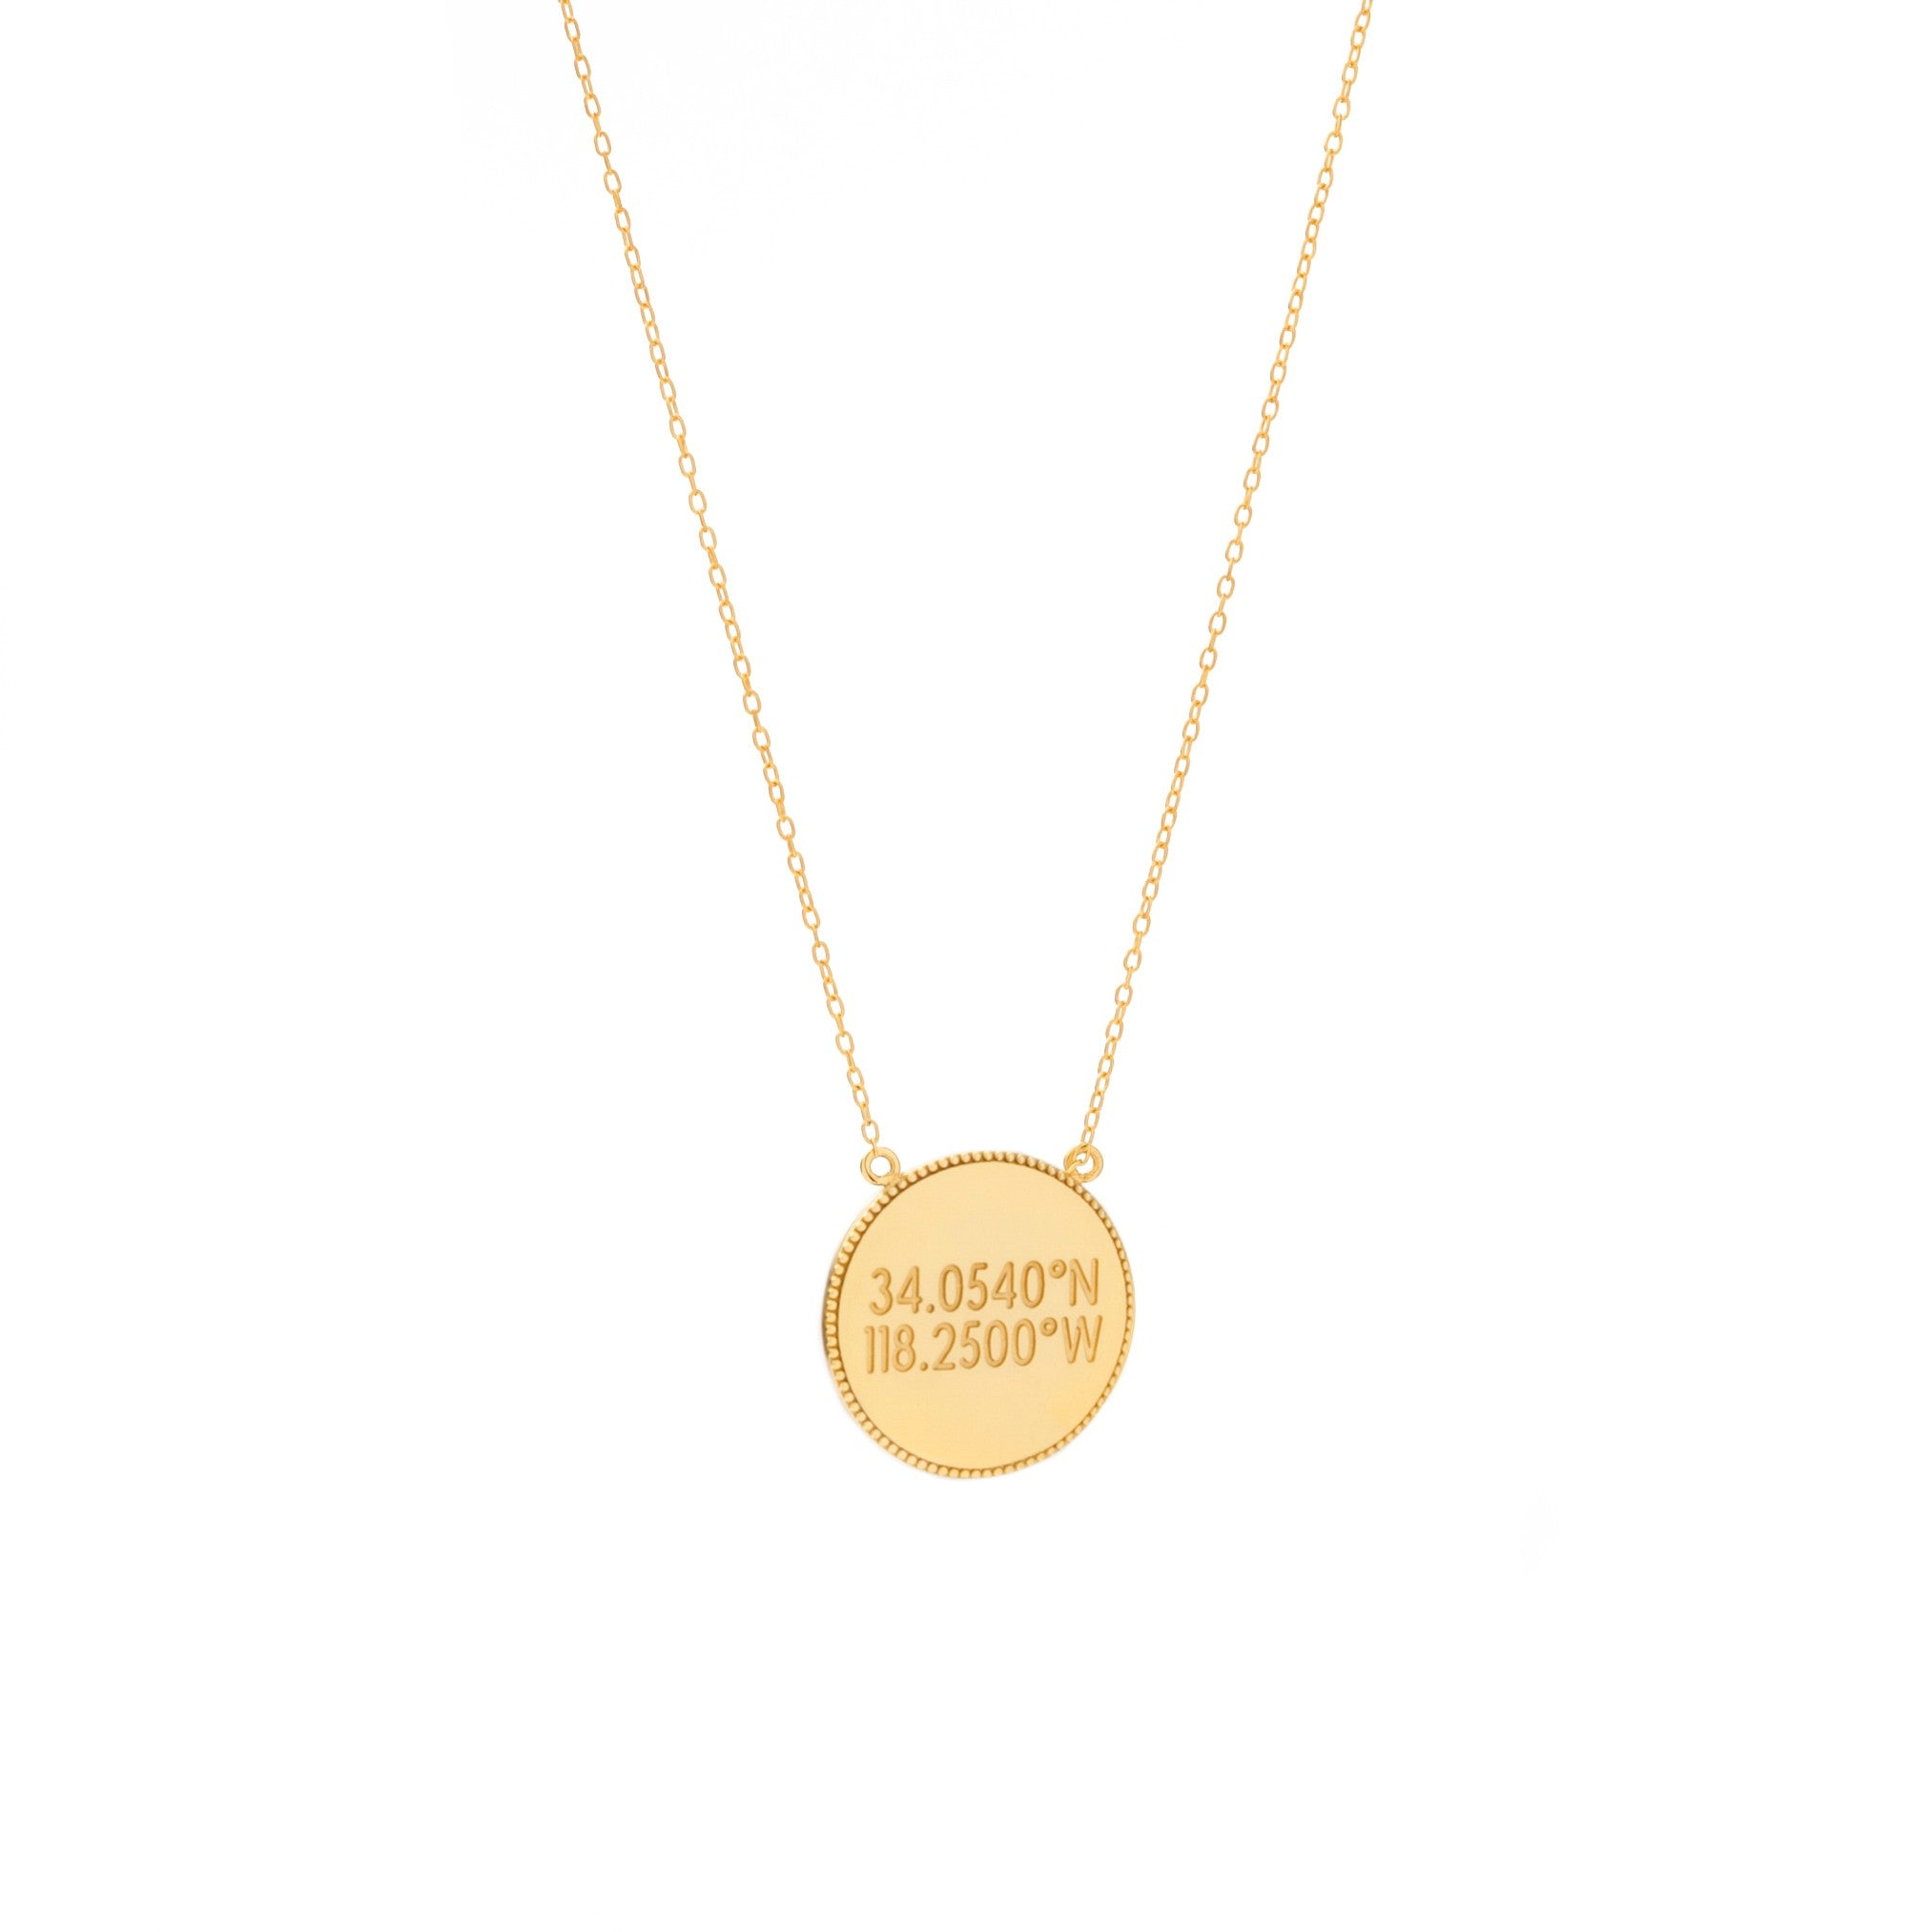 A flat circular gold pendant with inscription with scalloped edges on a gold chain